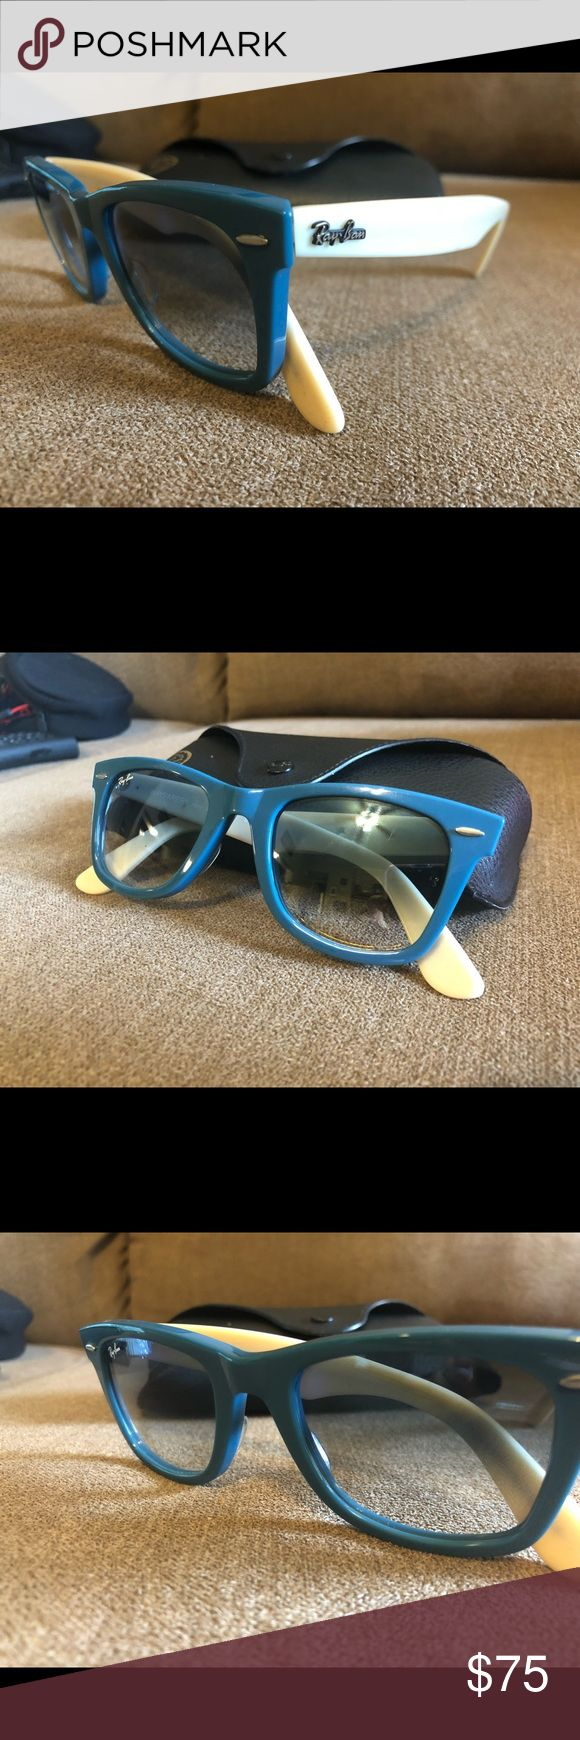 VINTAGE RAY-BAN WAYFARERS Blue and cream-perfect condition!  No trades.  No lowballs.  Prices firm.  Discount on bundles. Ray-Ban Accessories Sunglasses